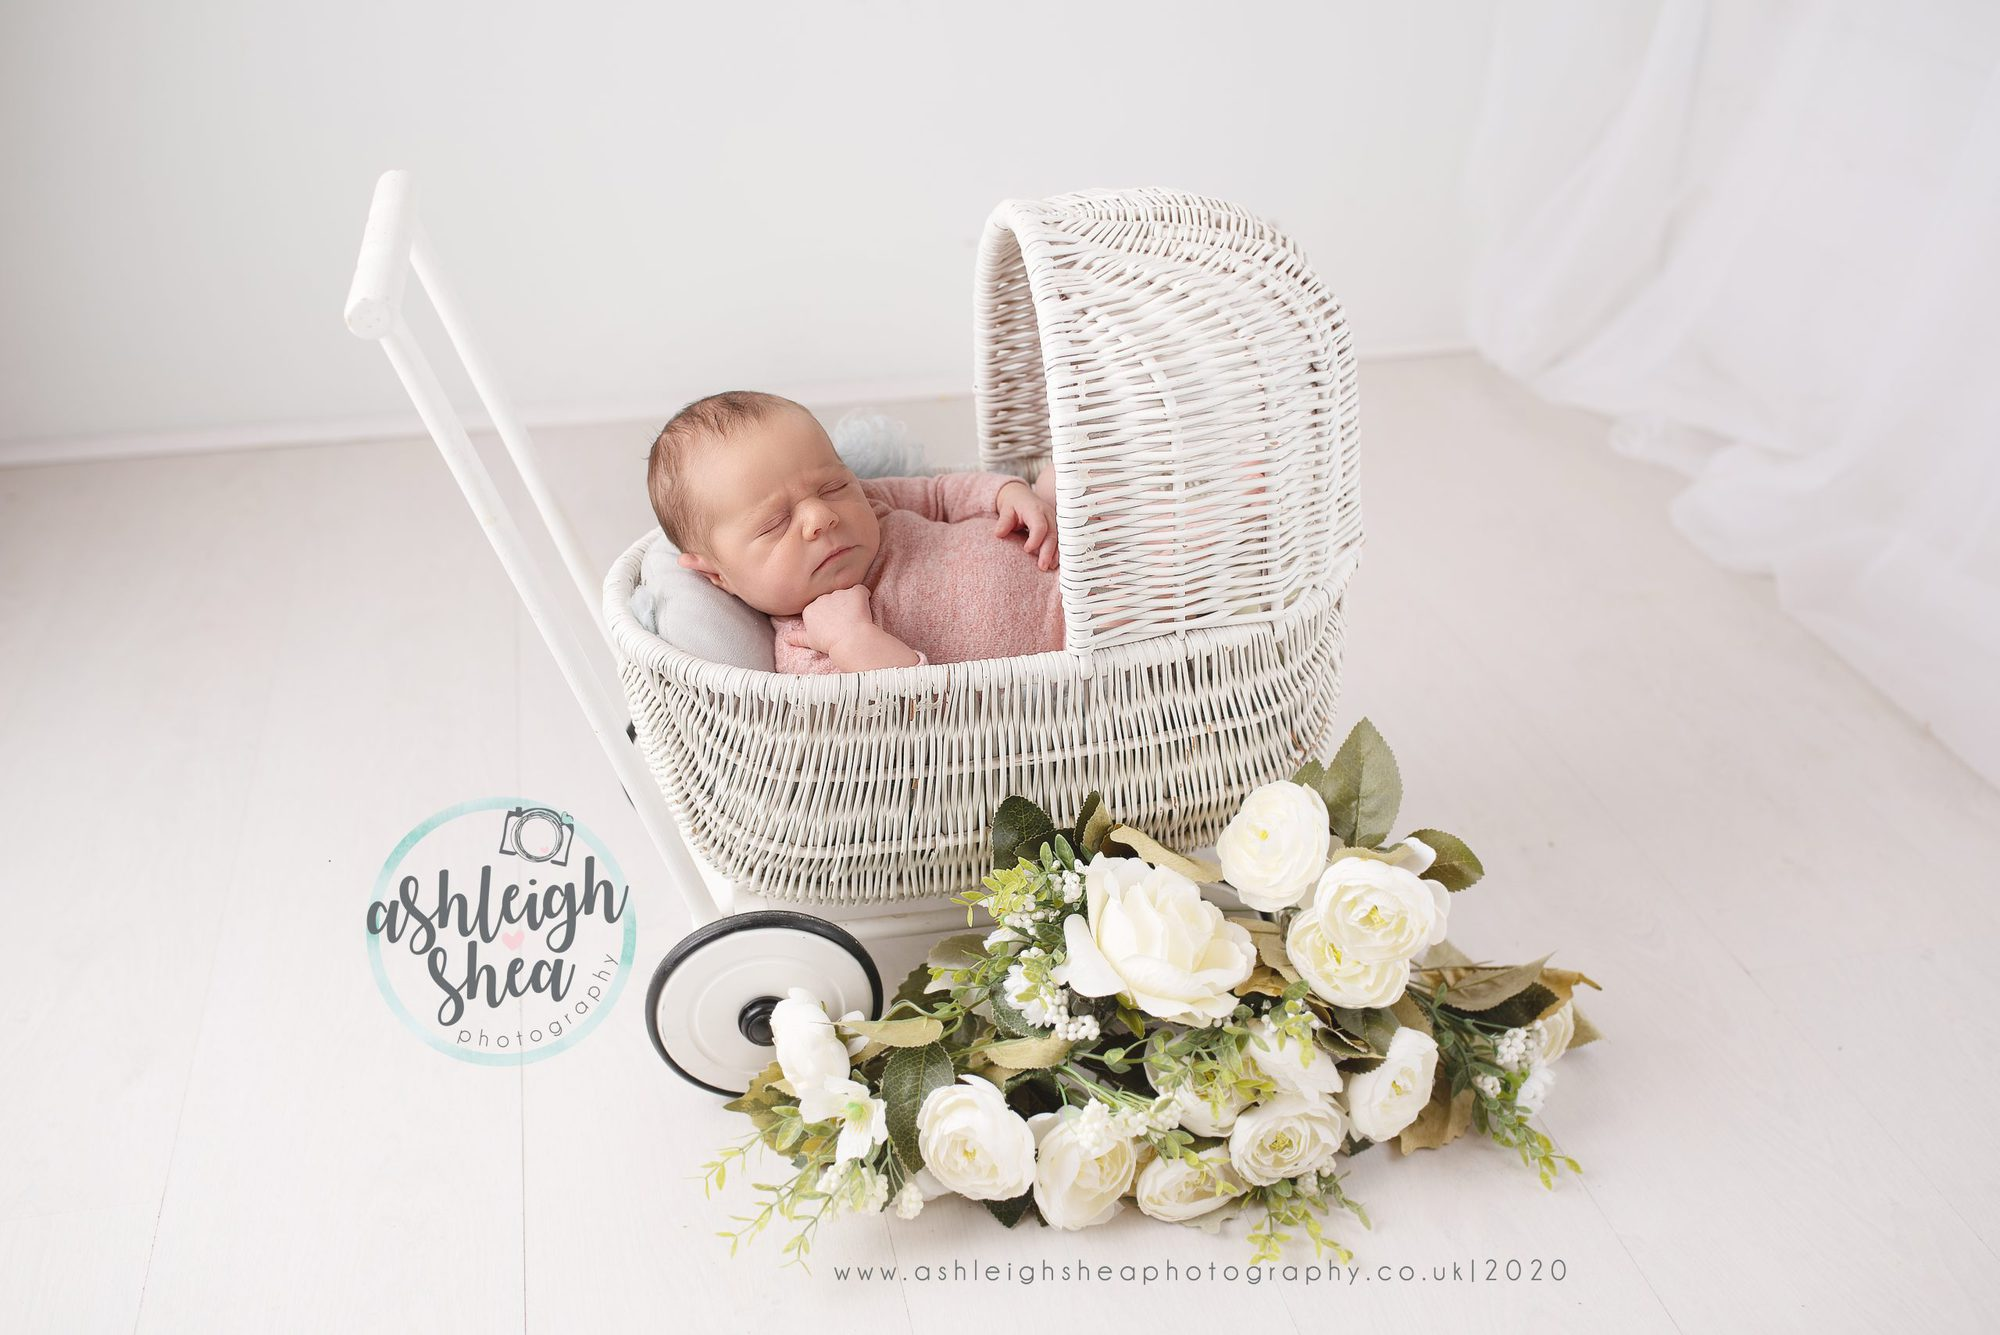 ashleigh shea photography, little pram, white flowers, pastel pink, baby girl, bexleyheath, london, wicker pram